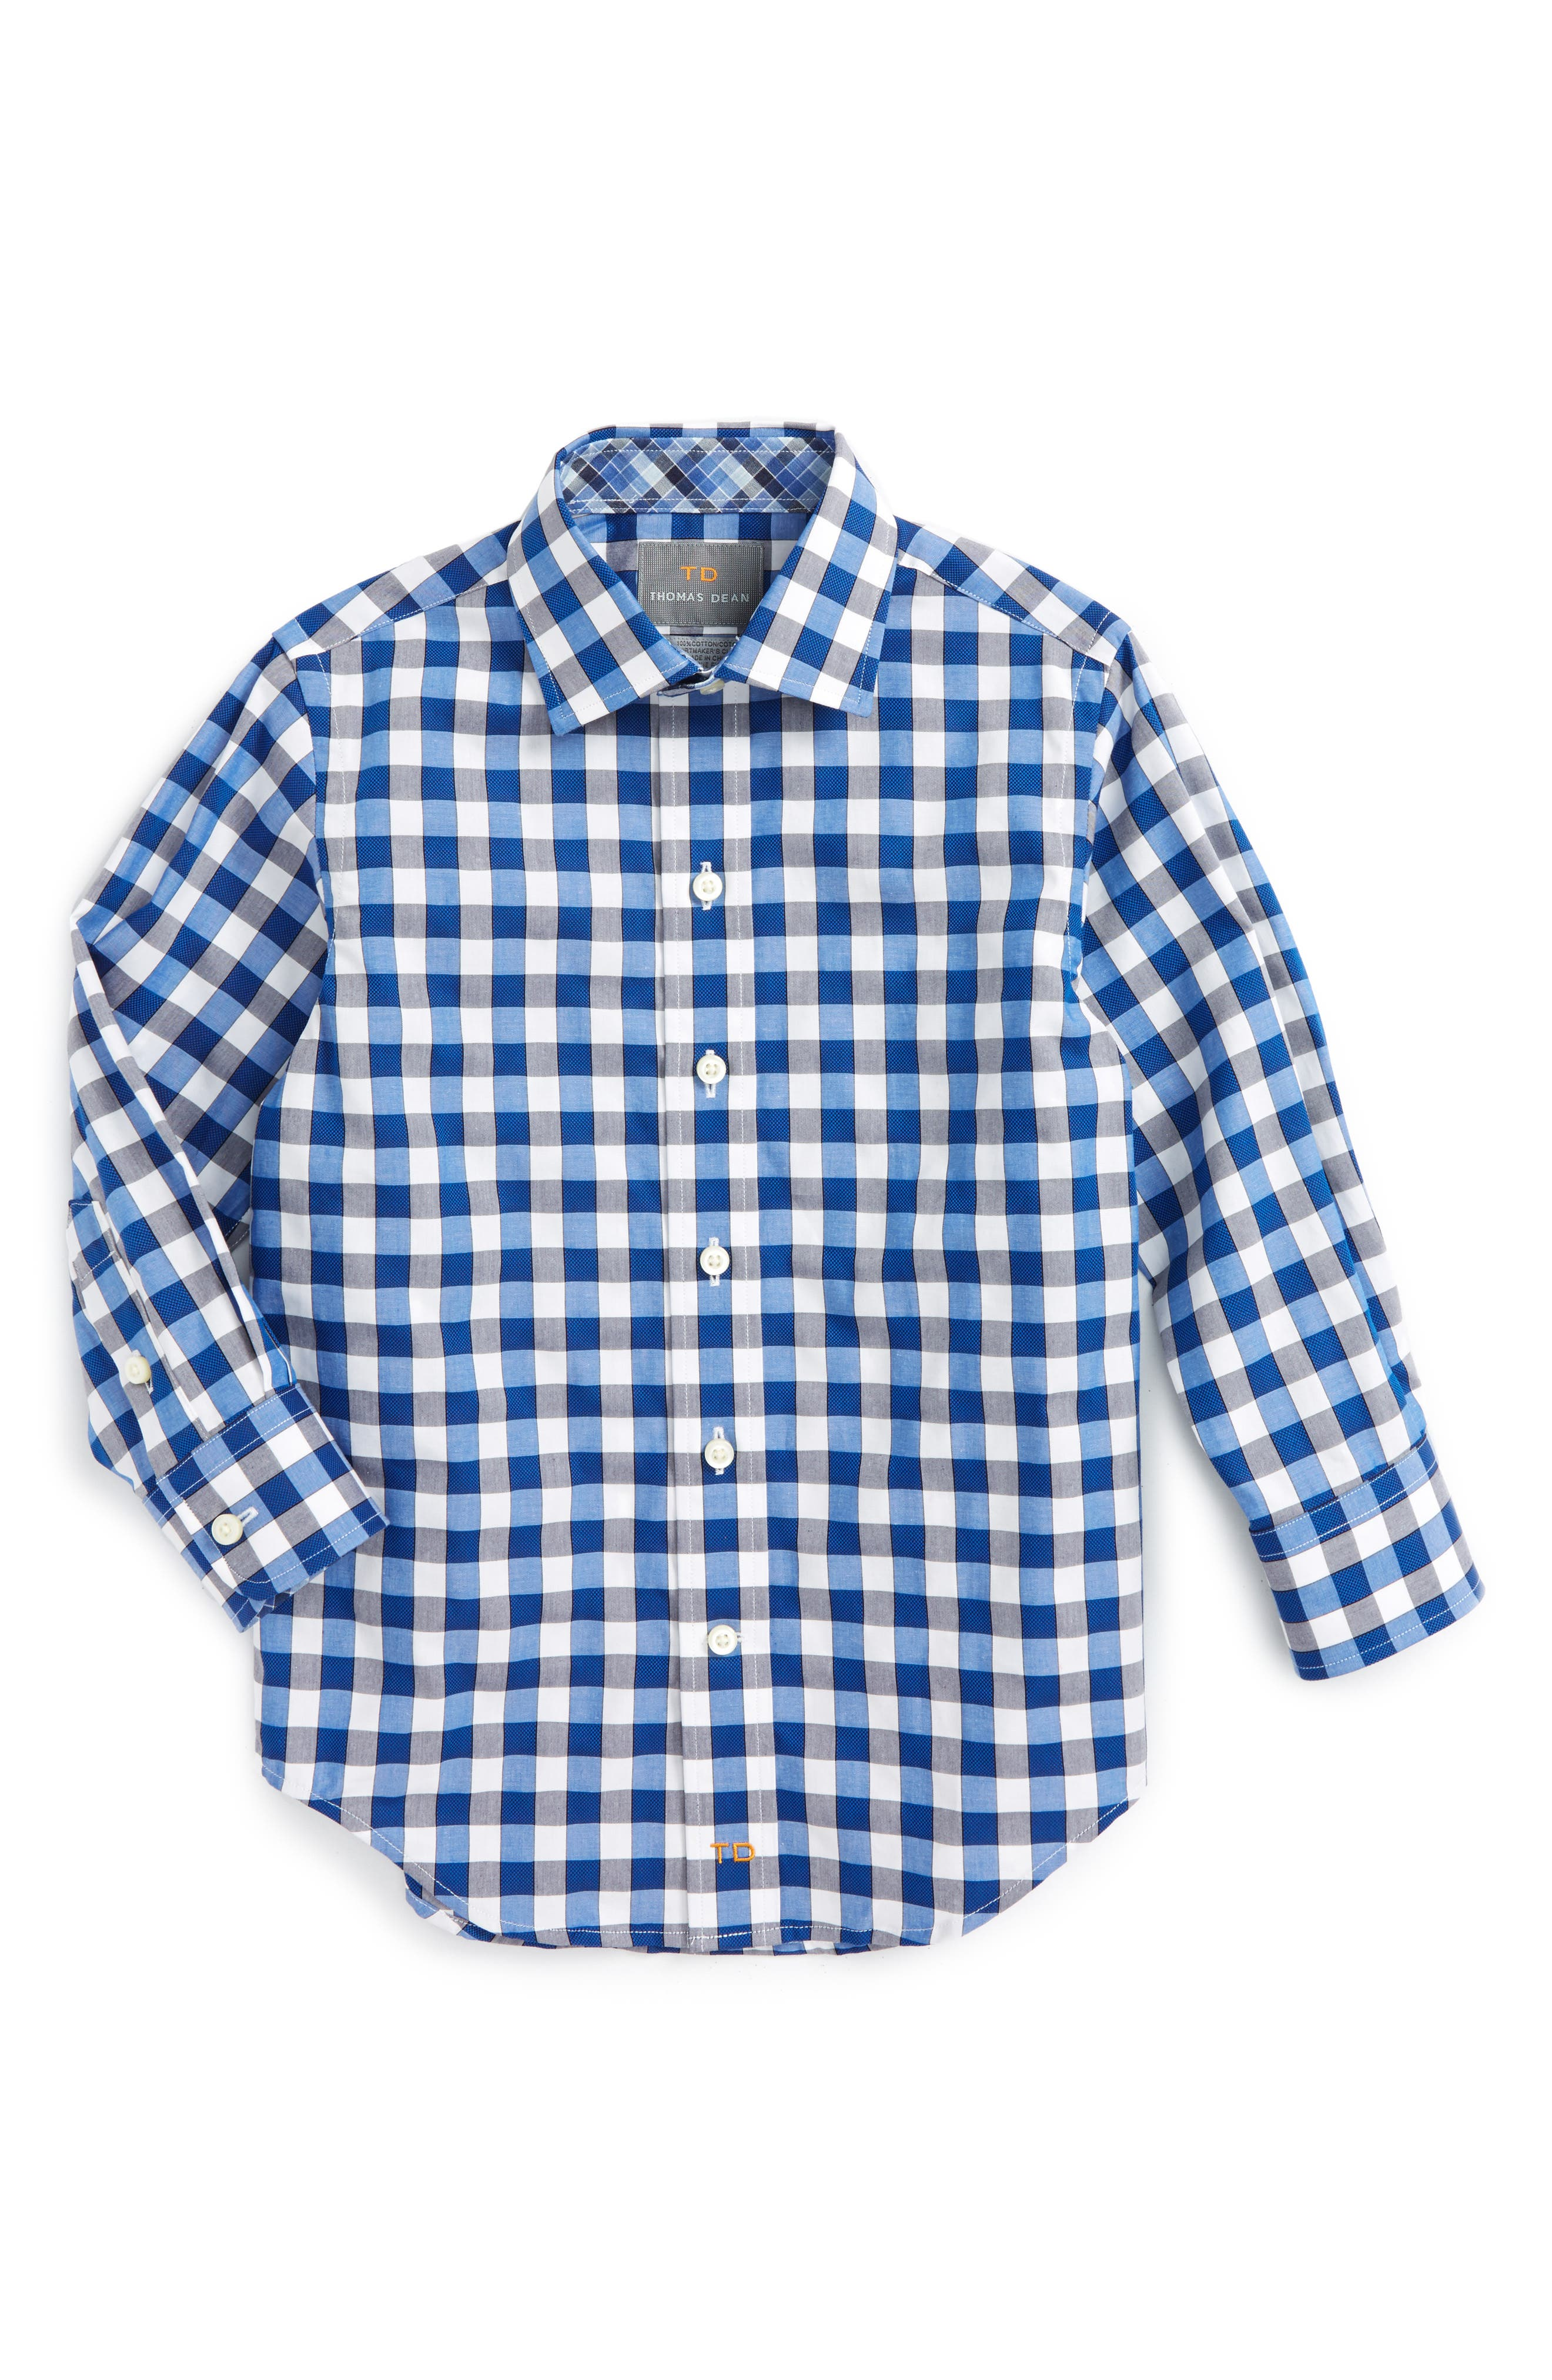 THOMAS DEAN Gingham Dress Shirt